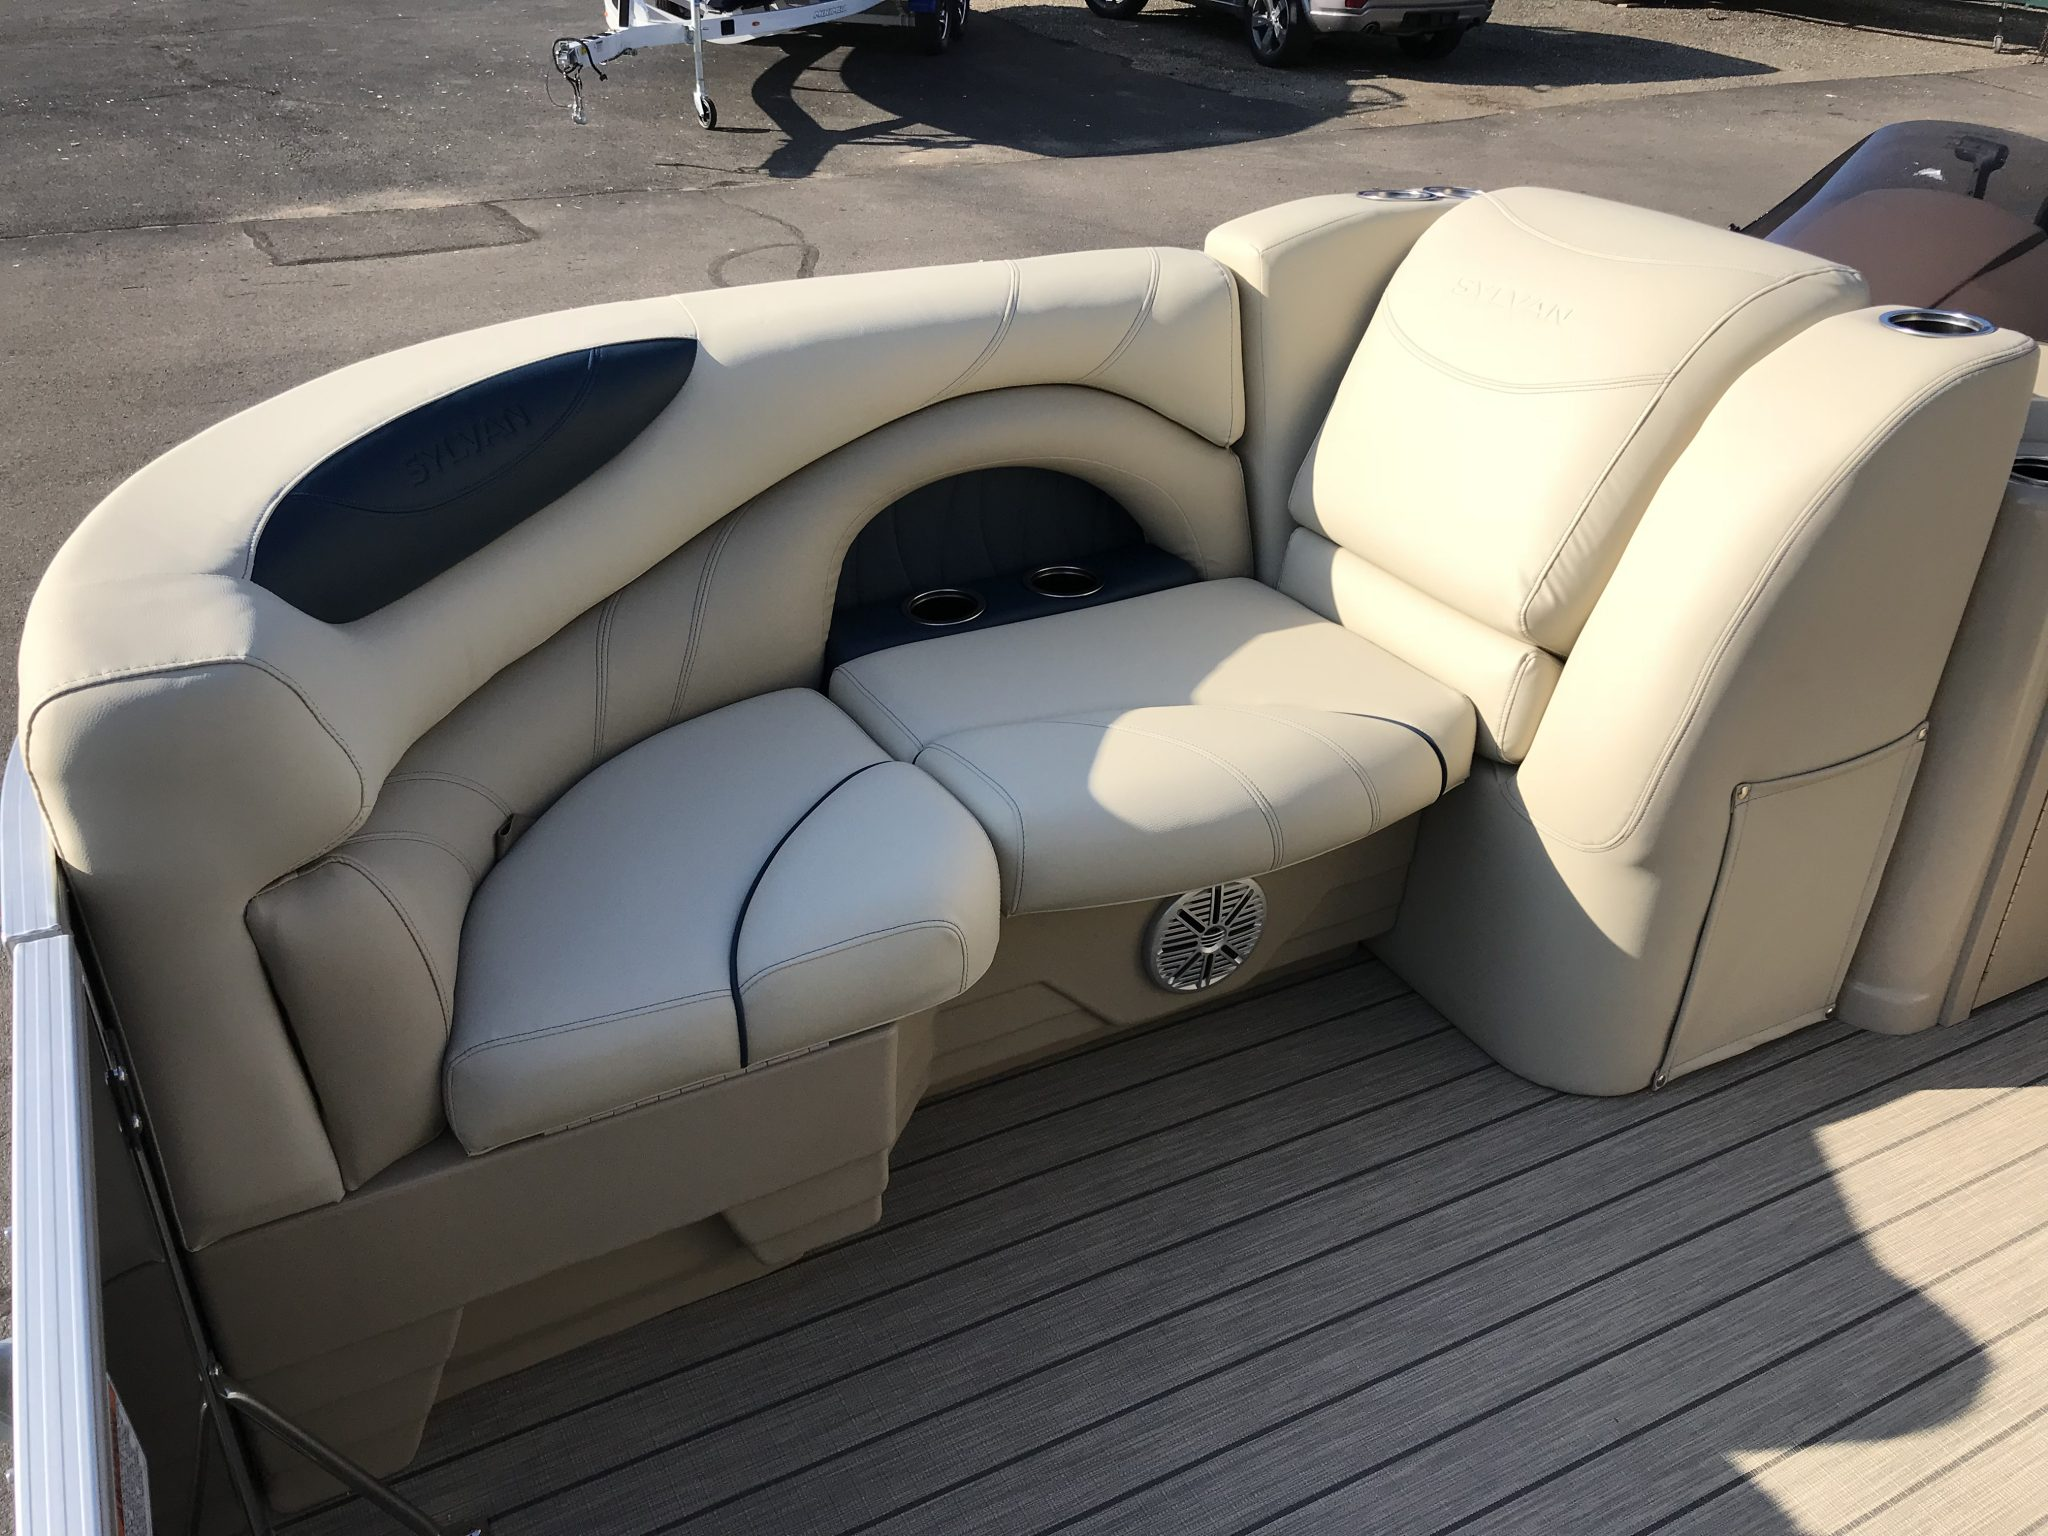 Sylvan 8520 Cruise-n-Fish Interior Cockpit Seating 7